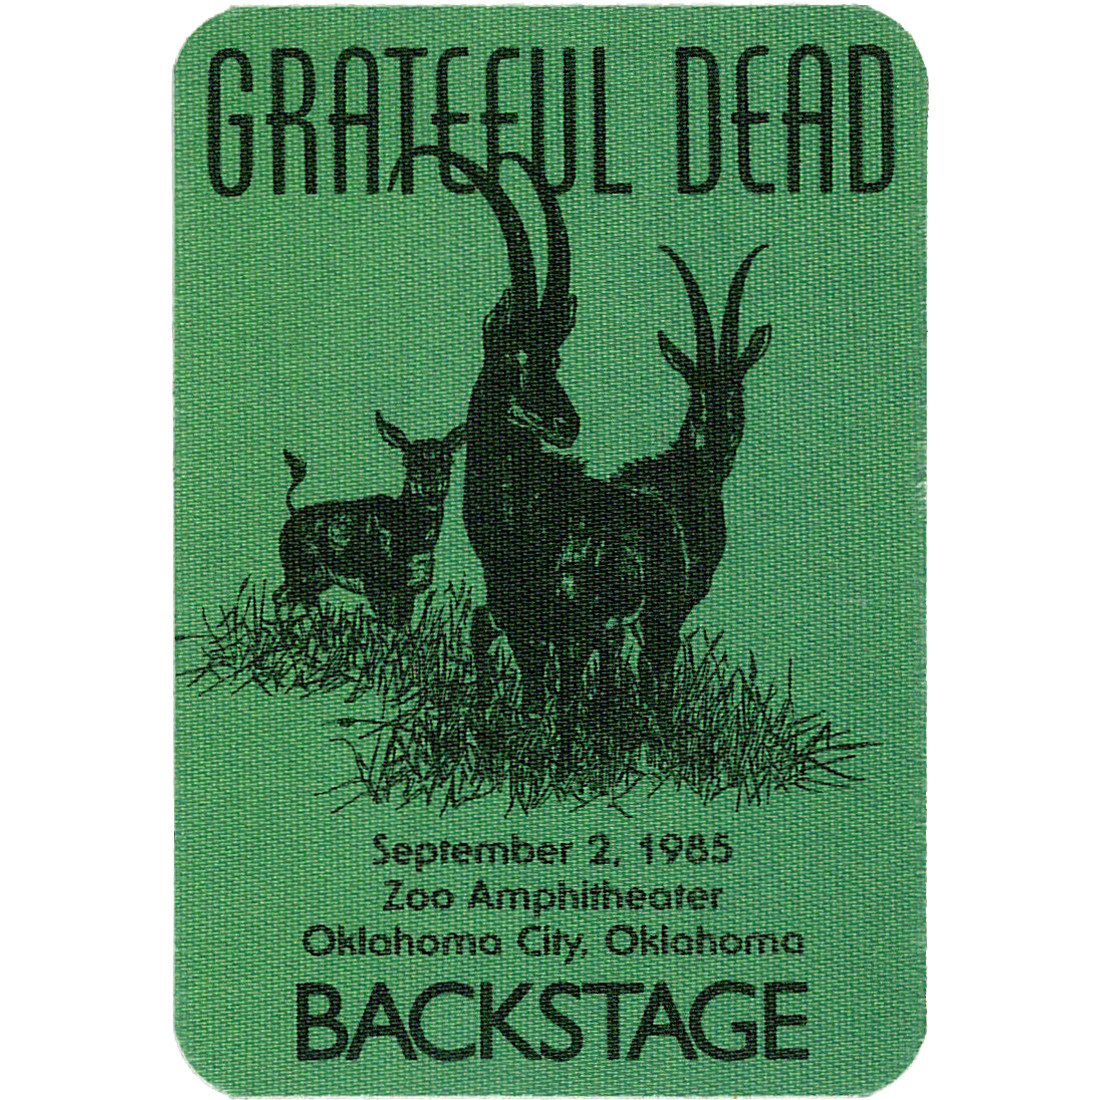 Grateful Dead 1985 09-02 Backstage Pass